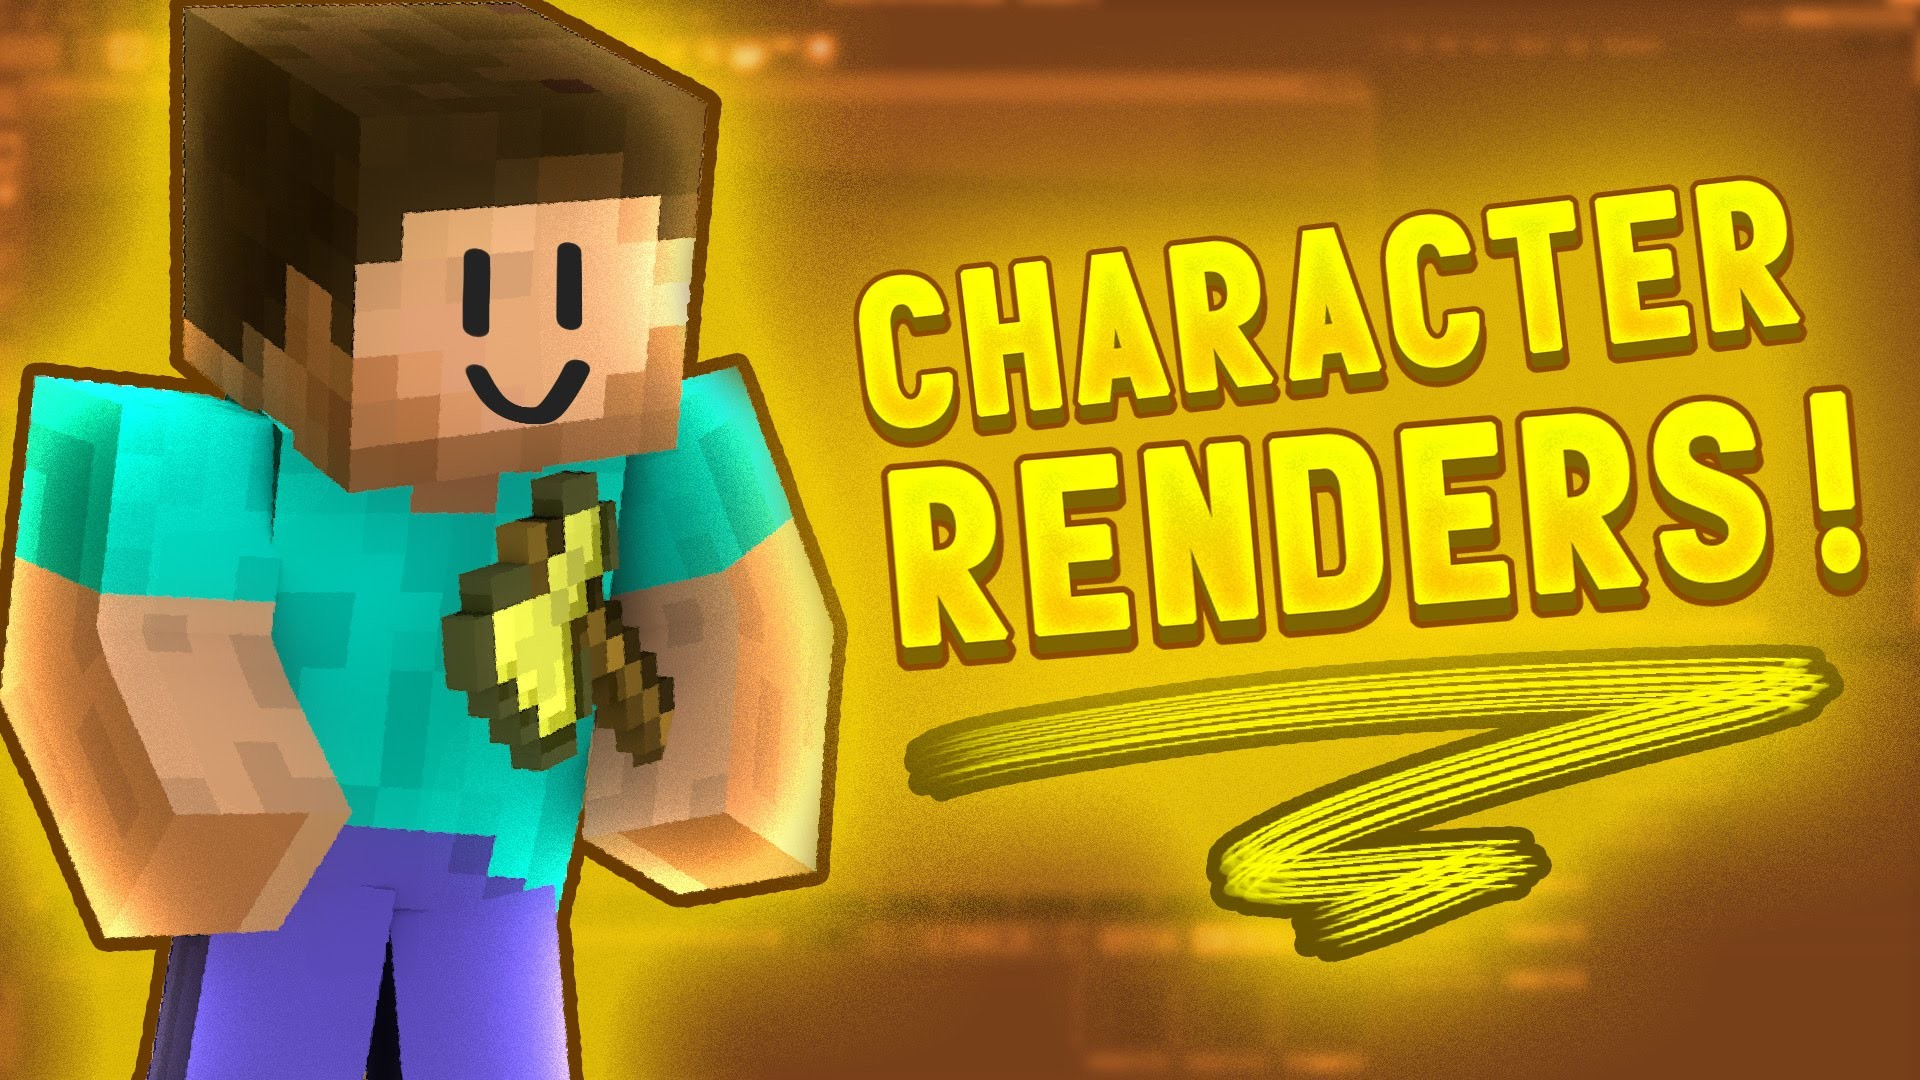 1920x1080 [TUTORIAL] How to Make Minecraft Character Renders - Cinema 4D -  Thumbnails, Banners, Wallpapers - YouTube